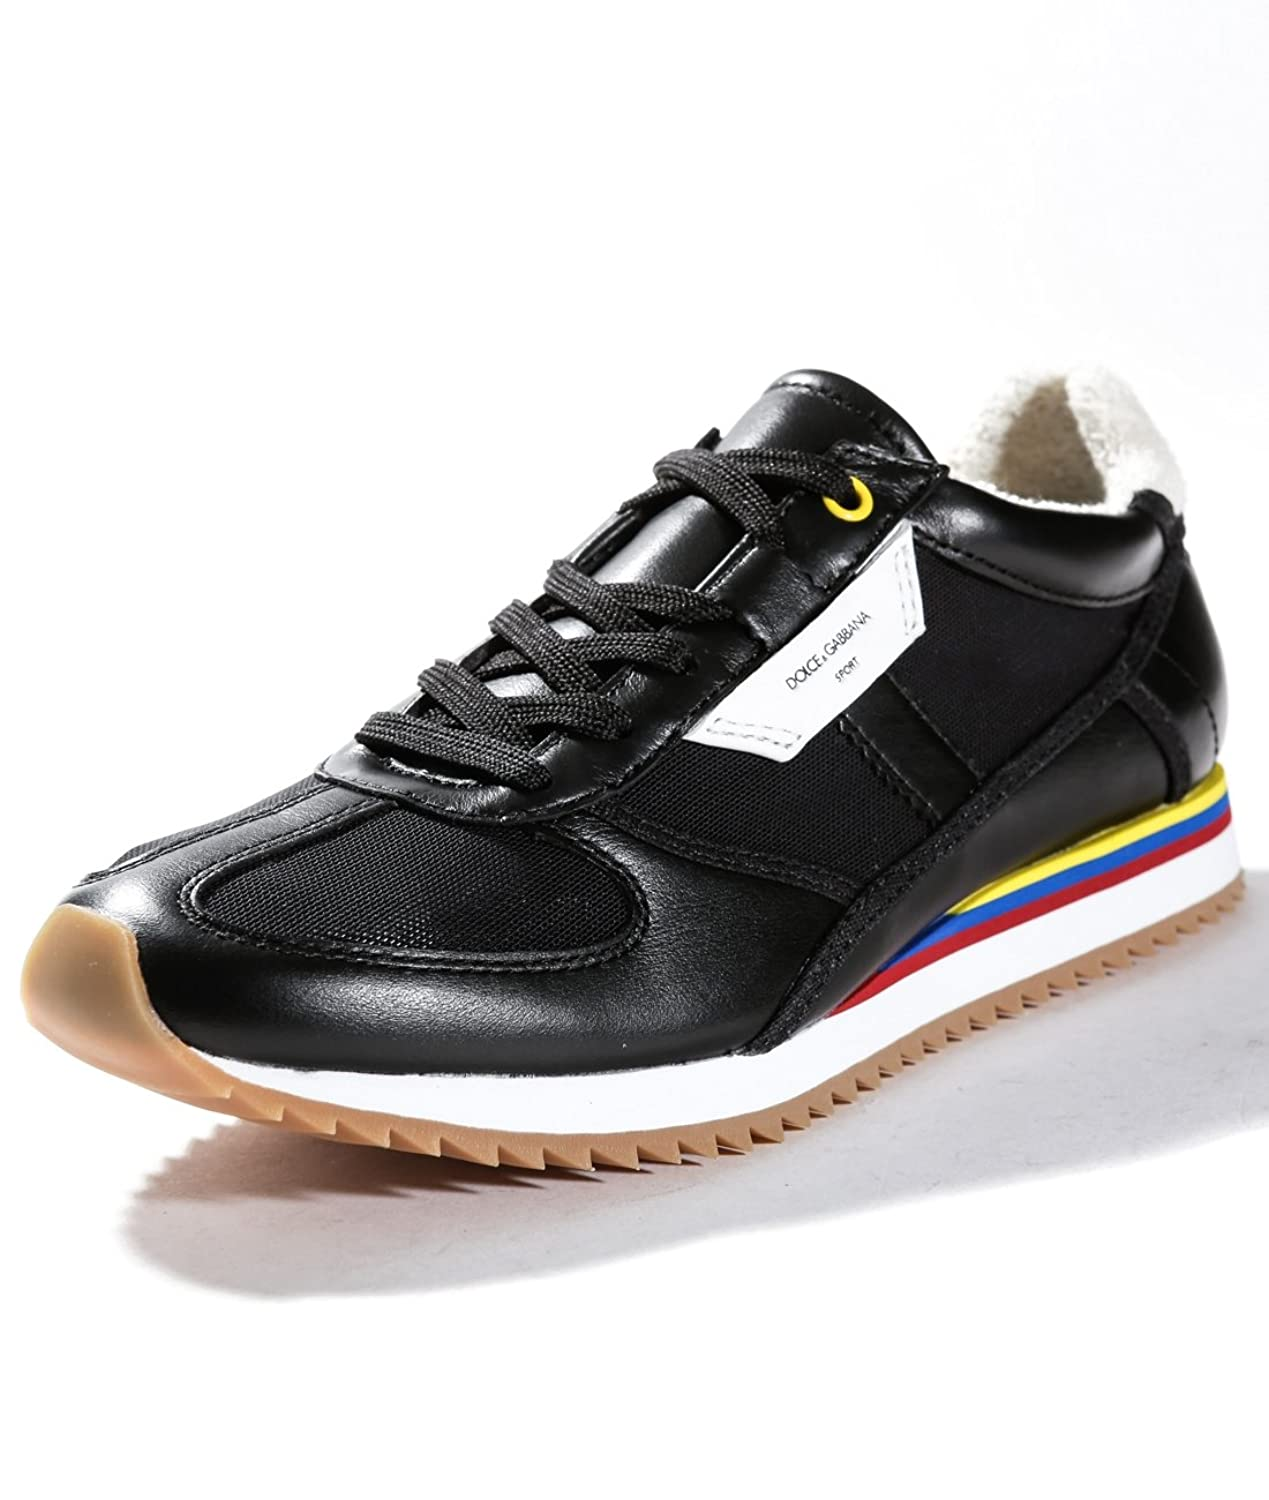 Dolce and Gabbana Men's Lace-Up Running Leather Sneakers